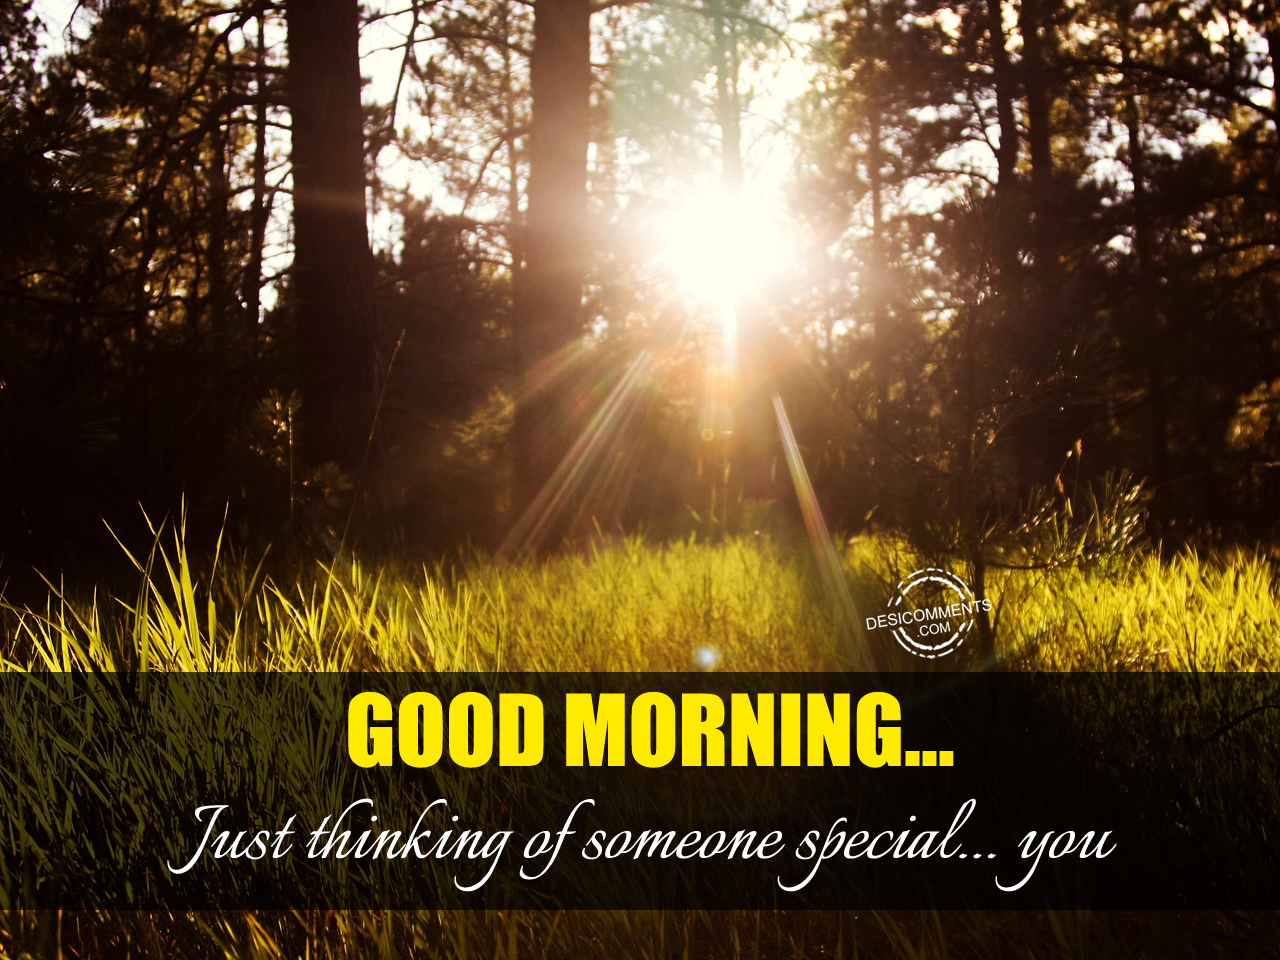 Good Morning Quotes For Someone Special By Pinterest: Just Thinking Of Someone Special You